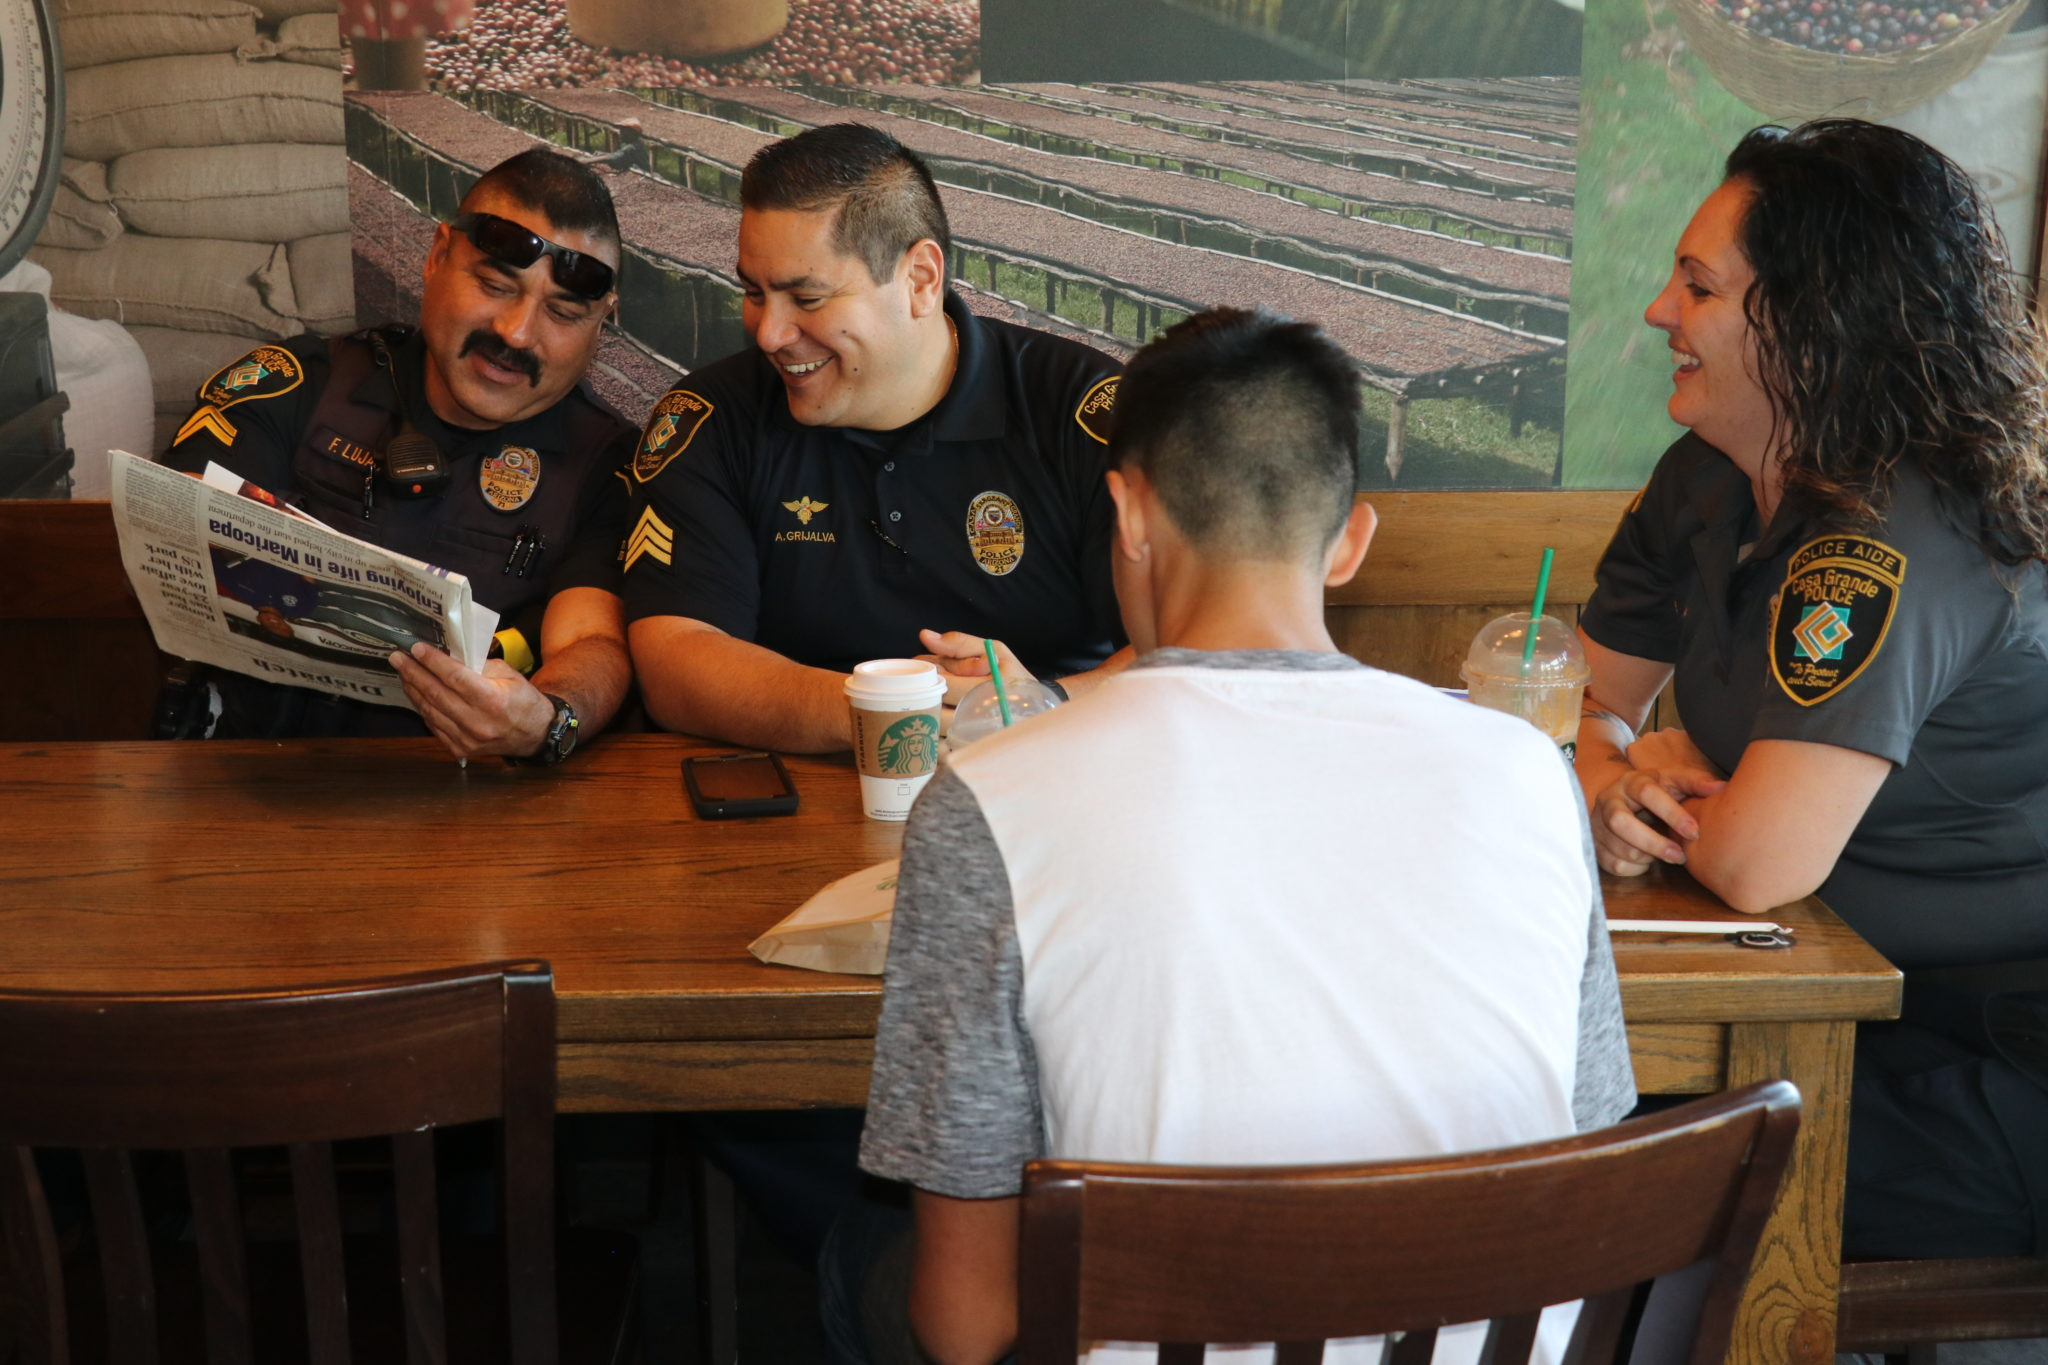 three cops laugh as they are reading the newspaper with one of their teenage sons sitting across from them at a coffee shop